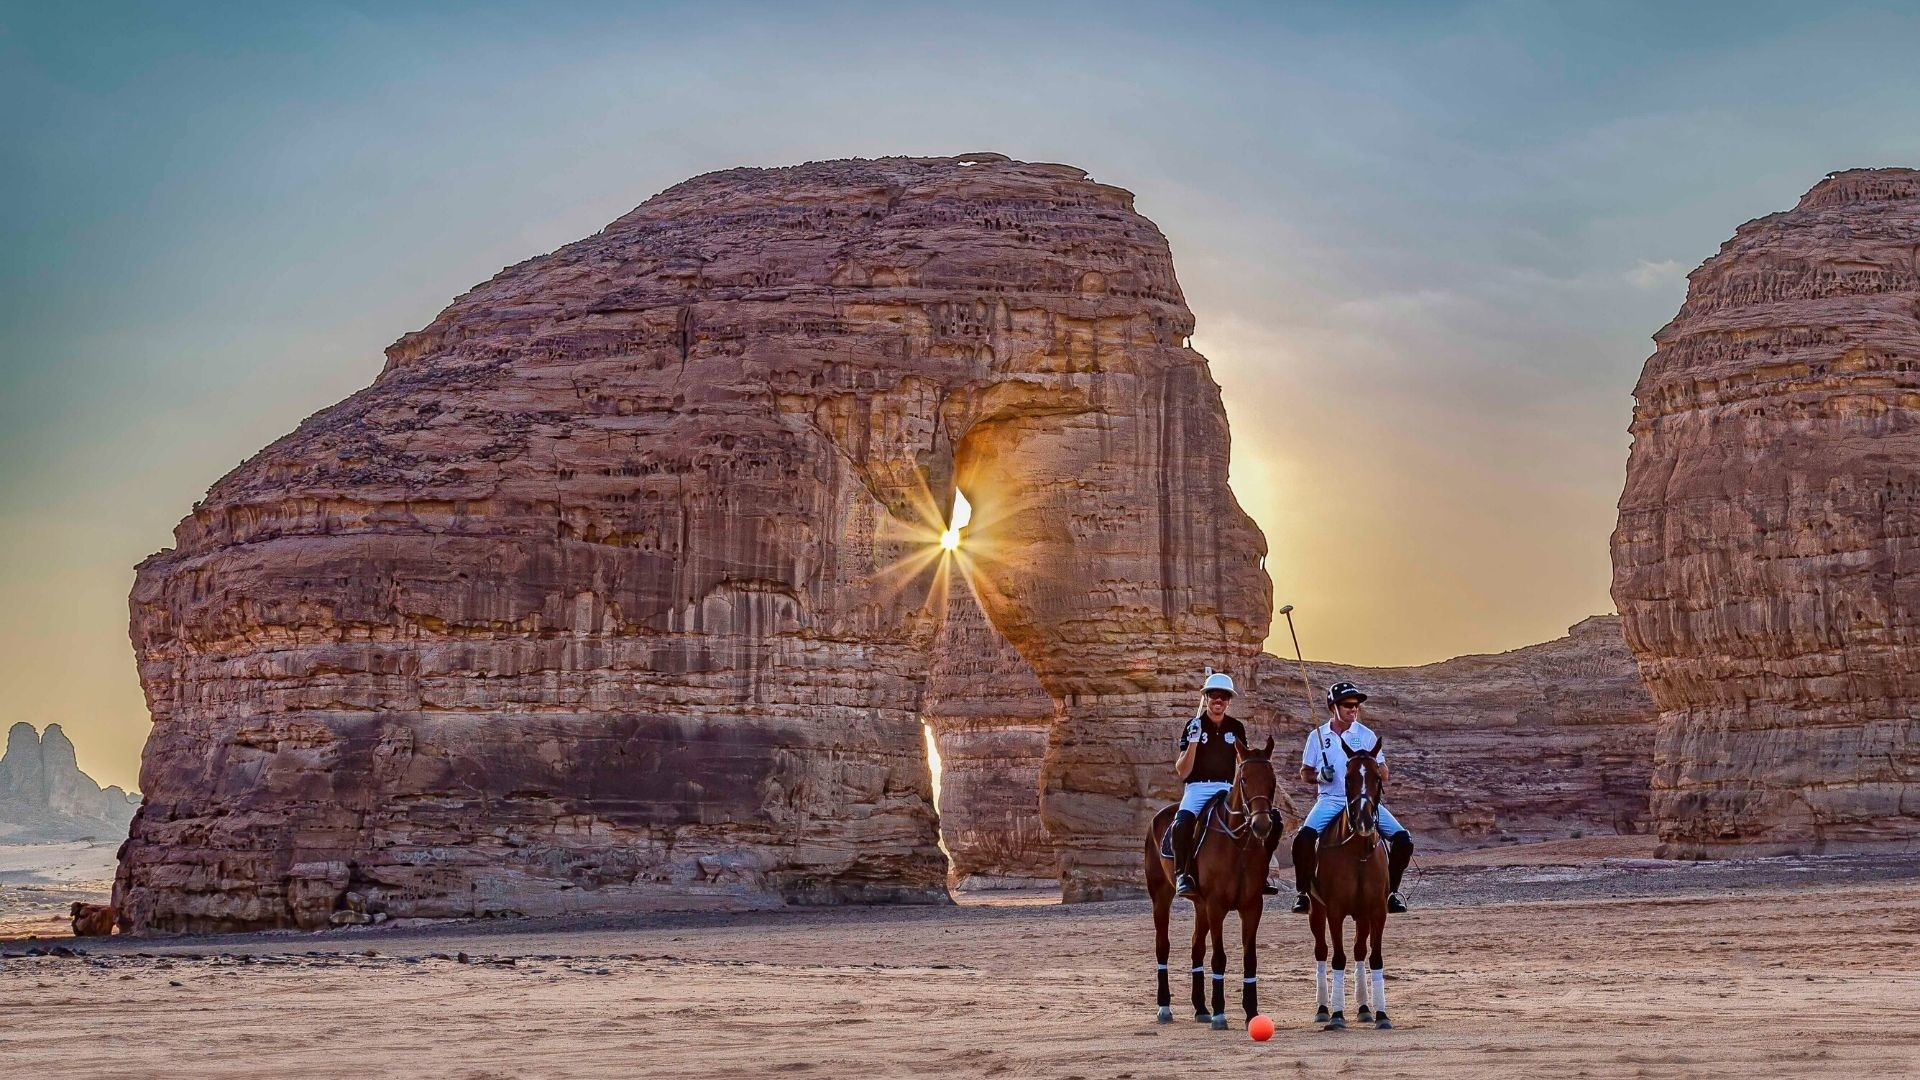 Saudi Arabia Is Hosting The World's First Ever Desert Polo Tournament